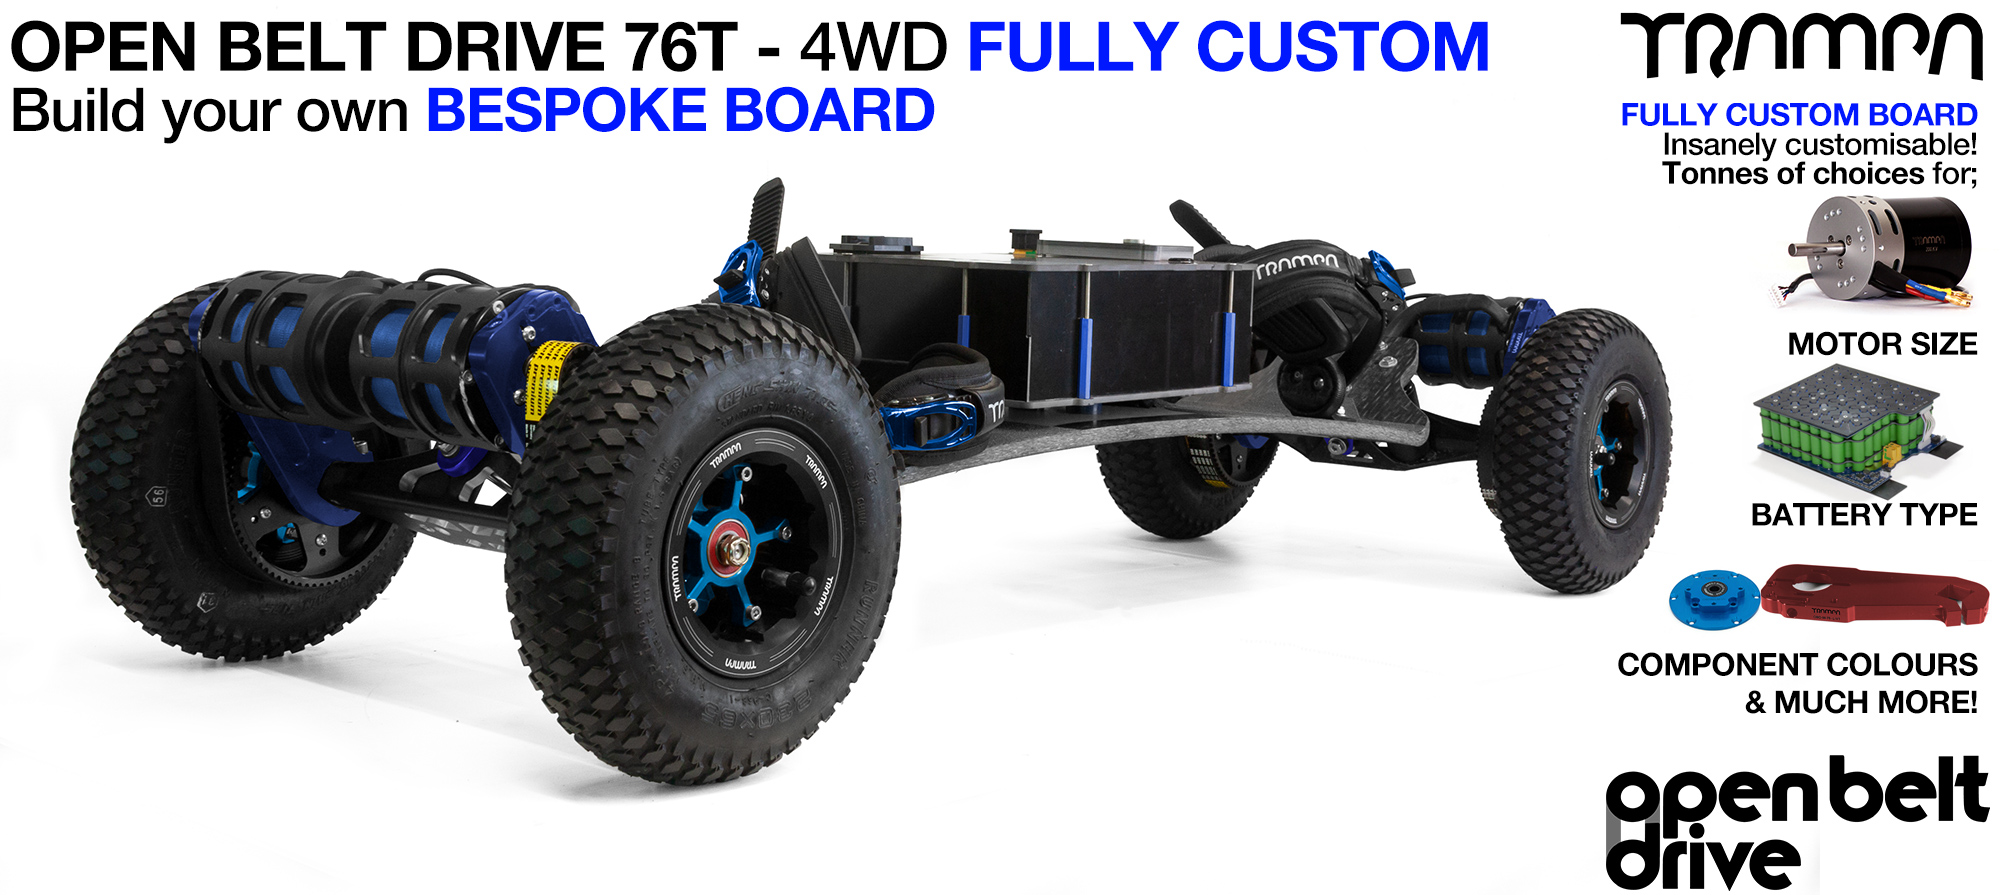 4WD 76t OPEN BELT DRIVE BIGBOI Electric TRAMPA Mountainboard - CUSTOM